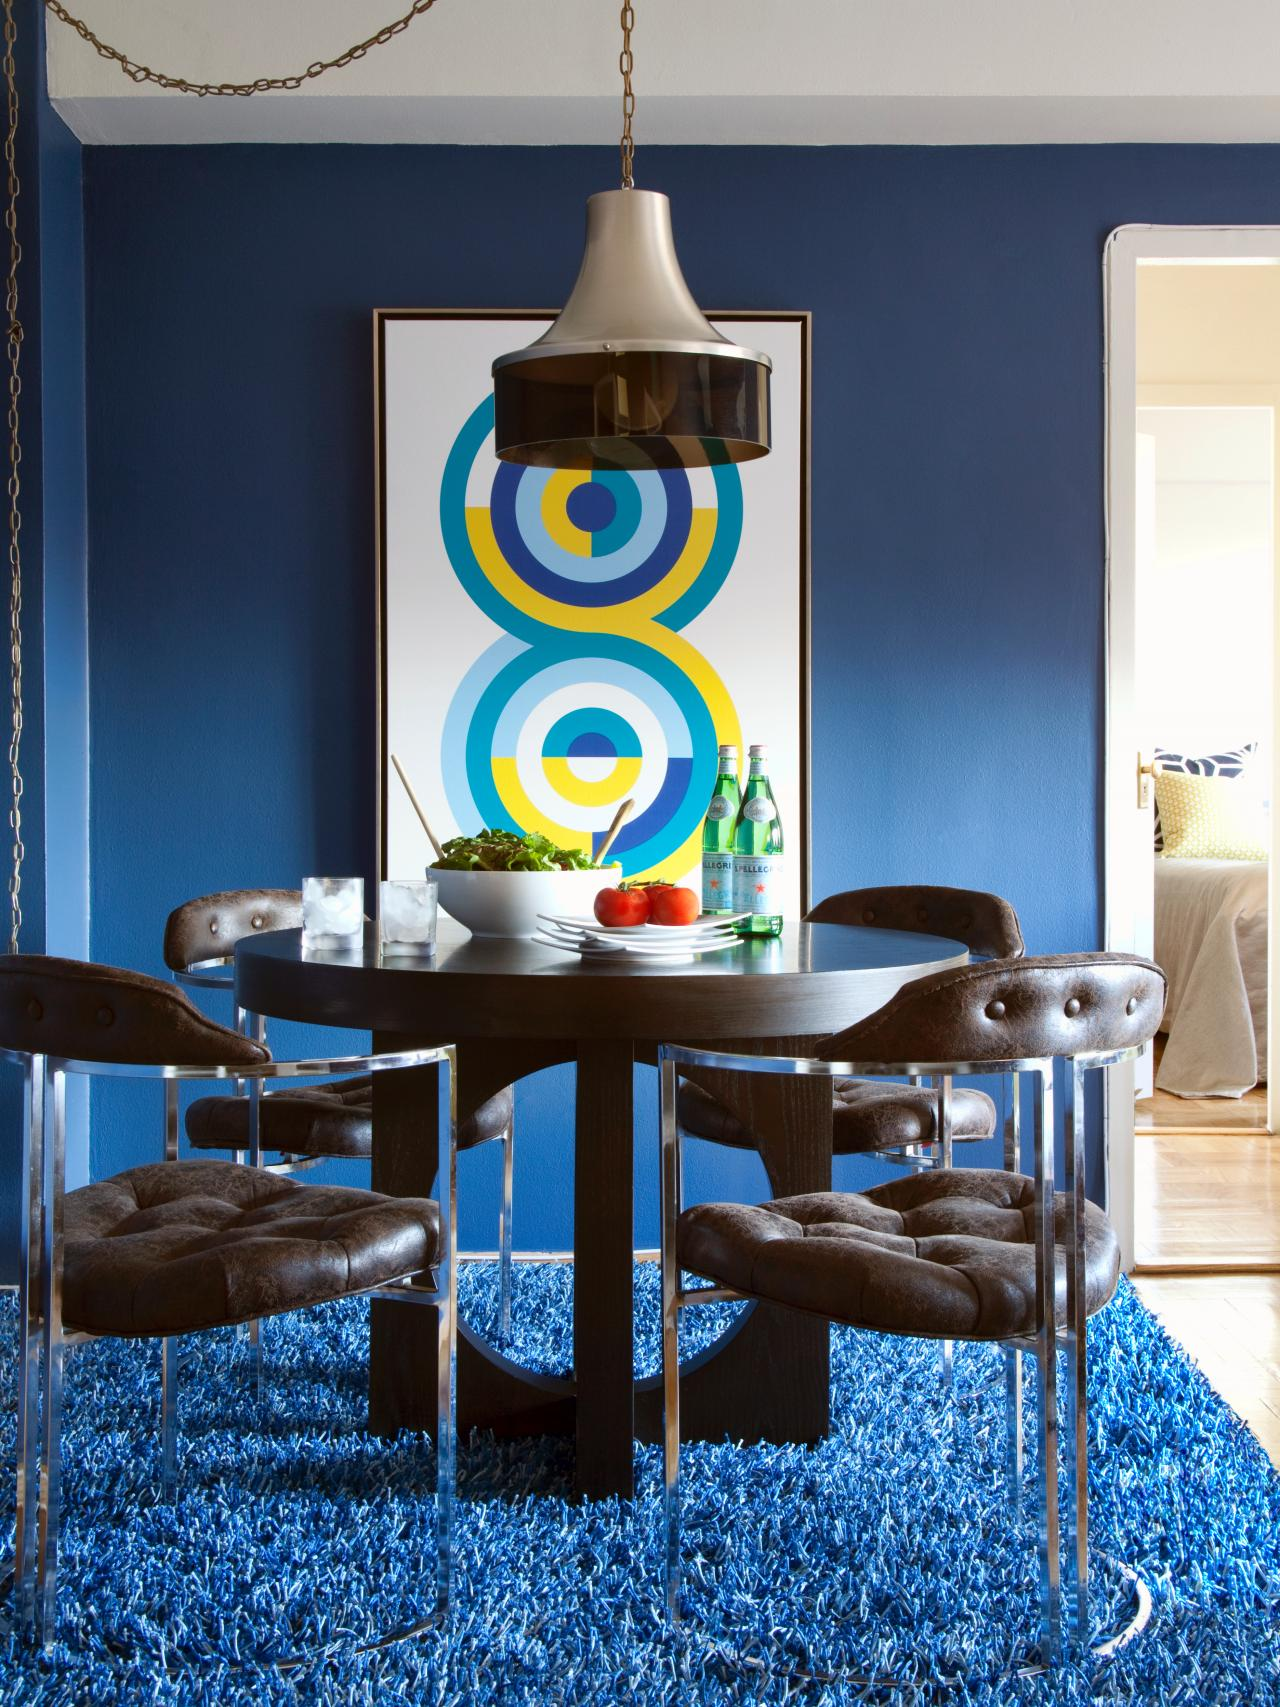 Contemporary Dining Room With Dark Wood Table And Blue Shag Carpet